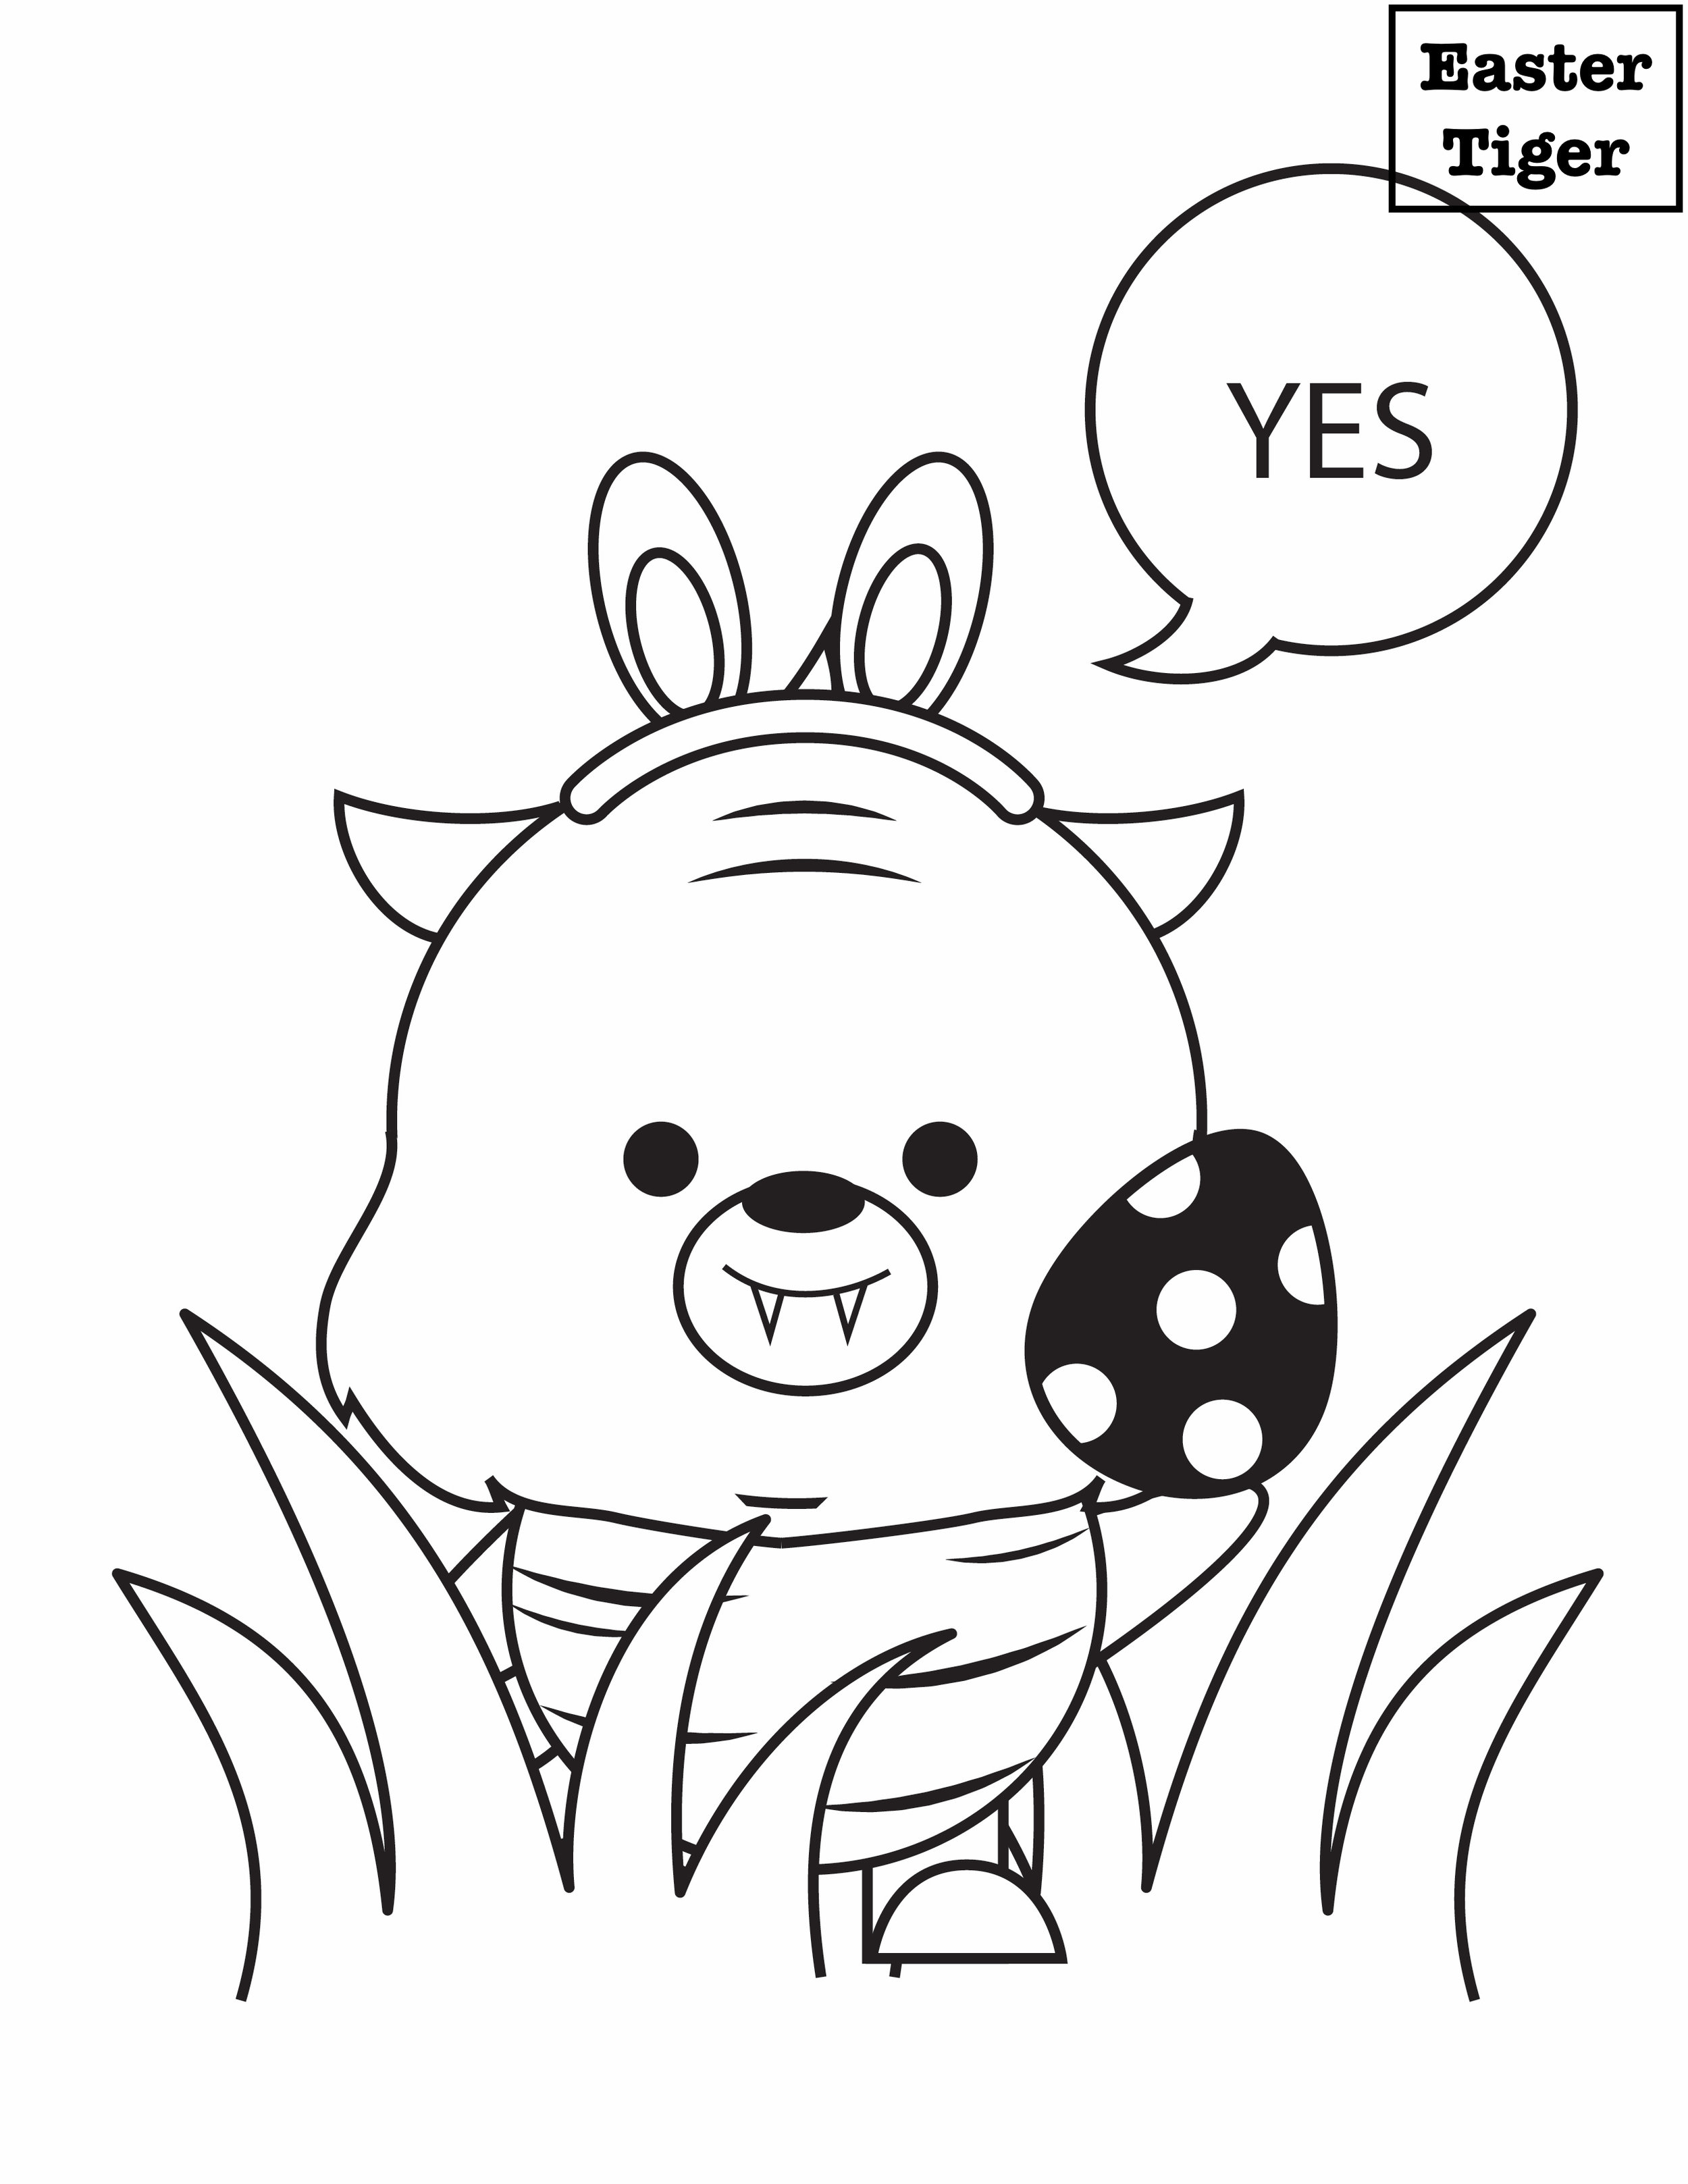 Easter Tiger with Tag.jpeg